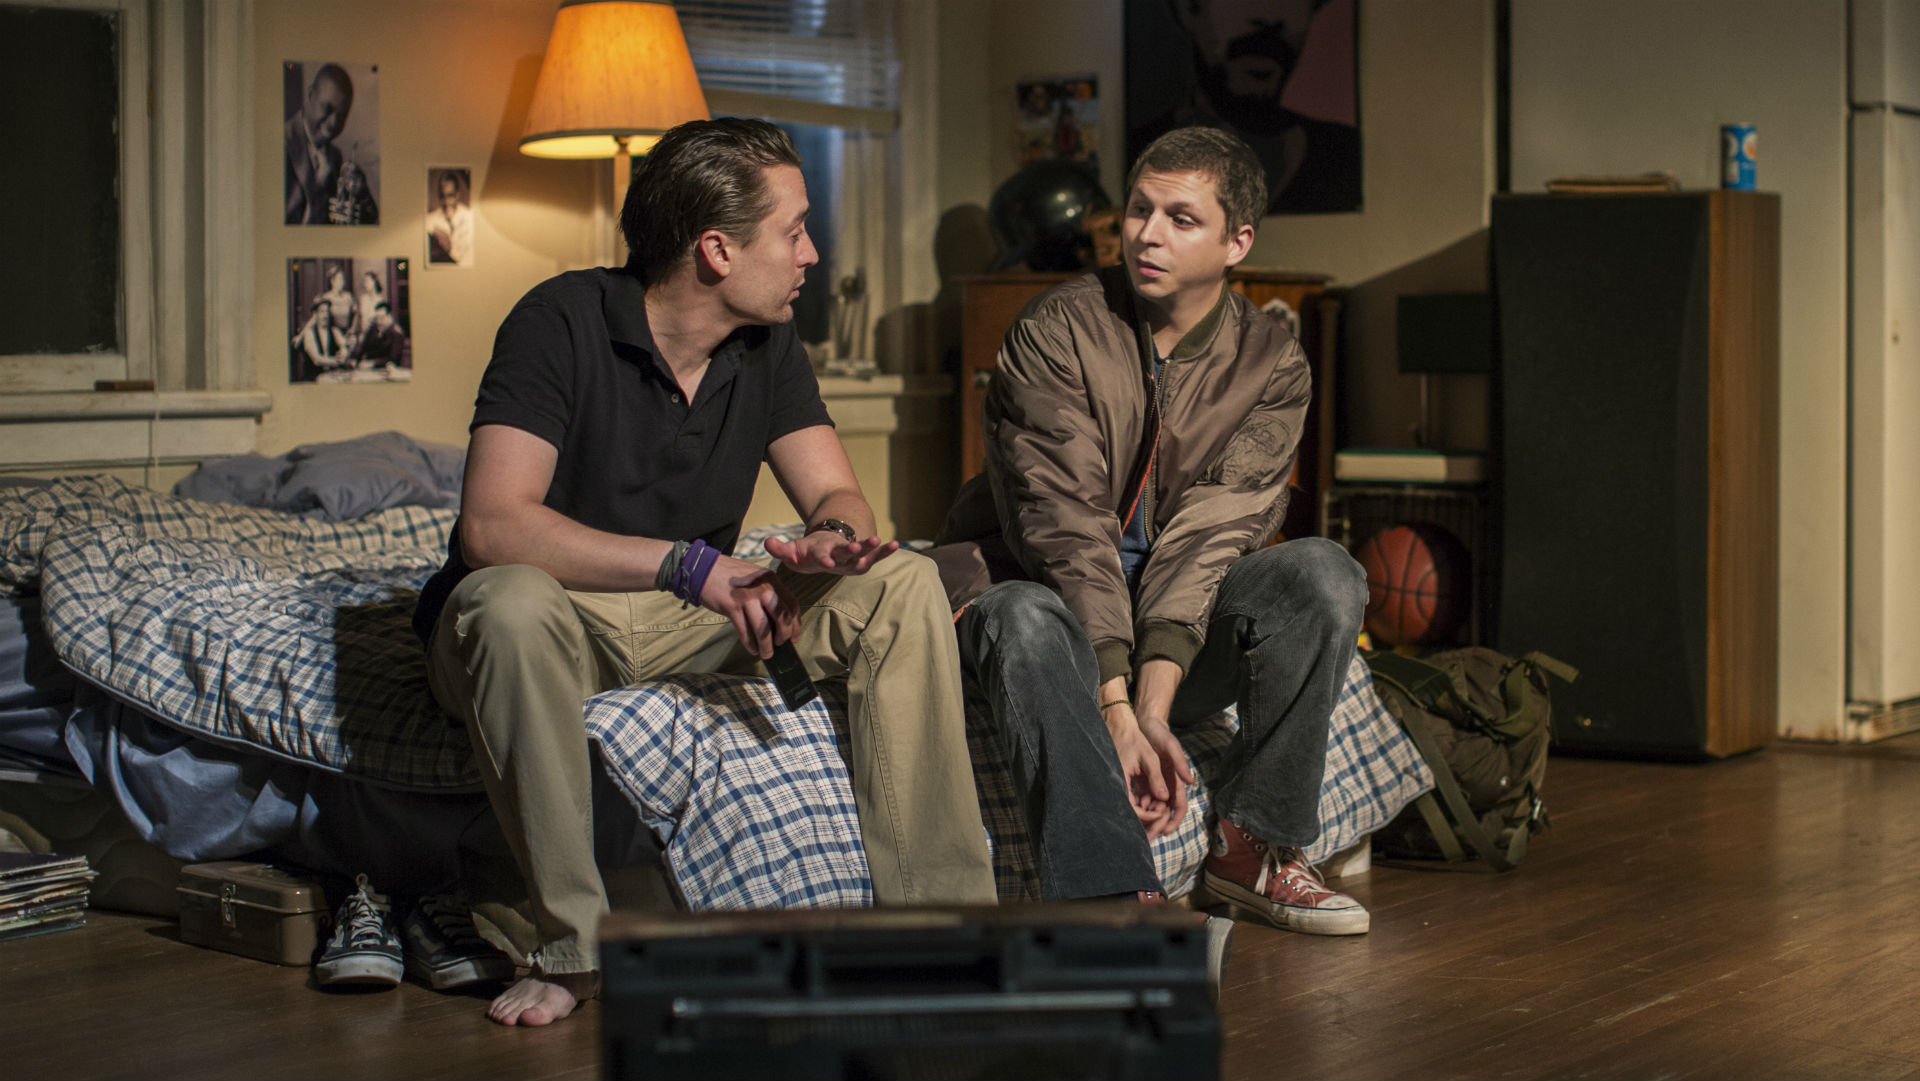 Broadway Review: Michael Cera in 'This Is Our Youth' - Variety